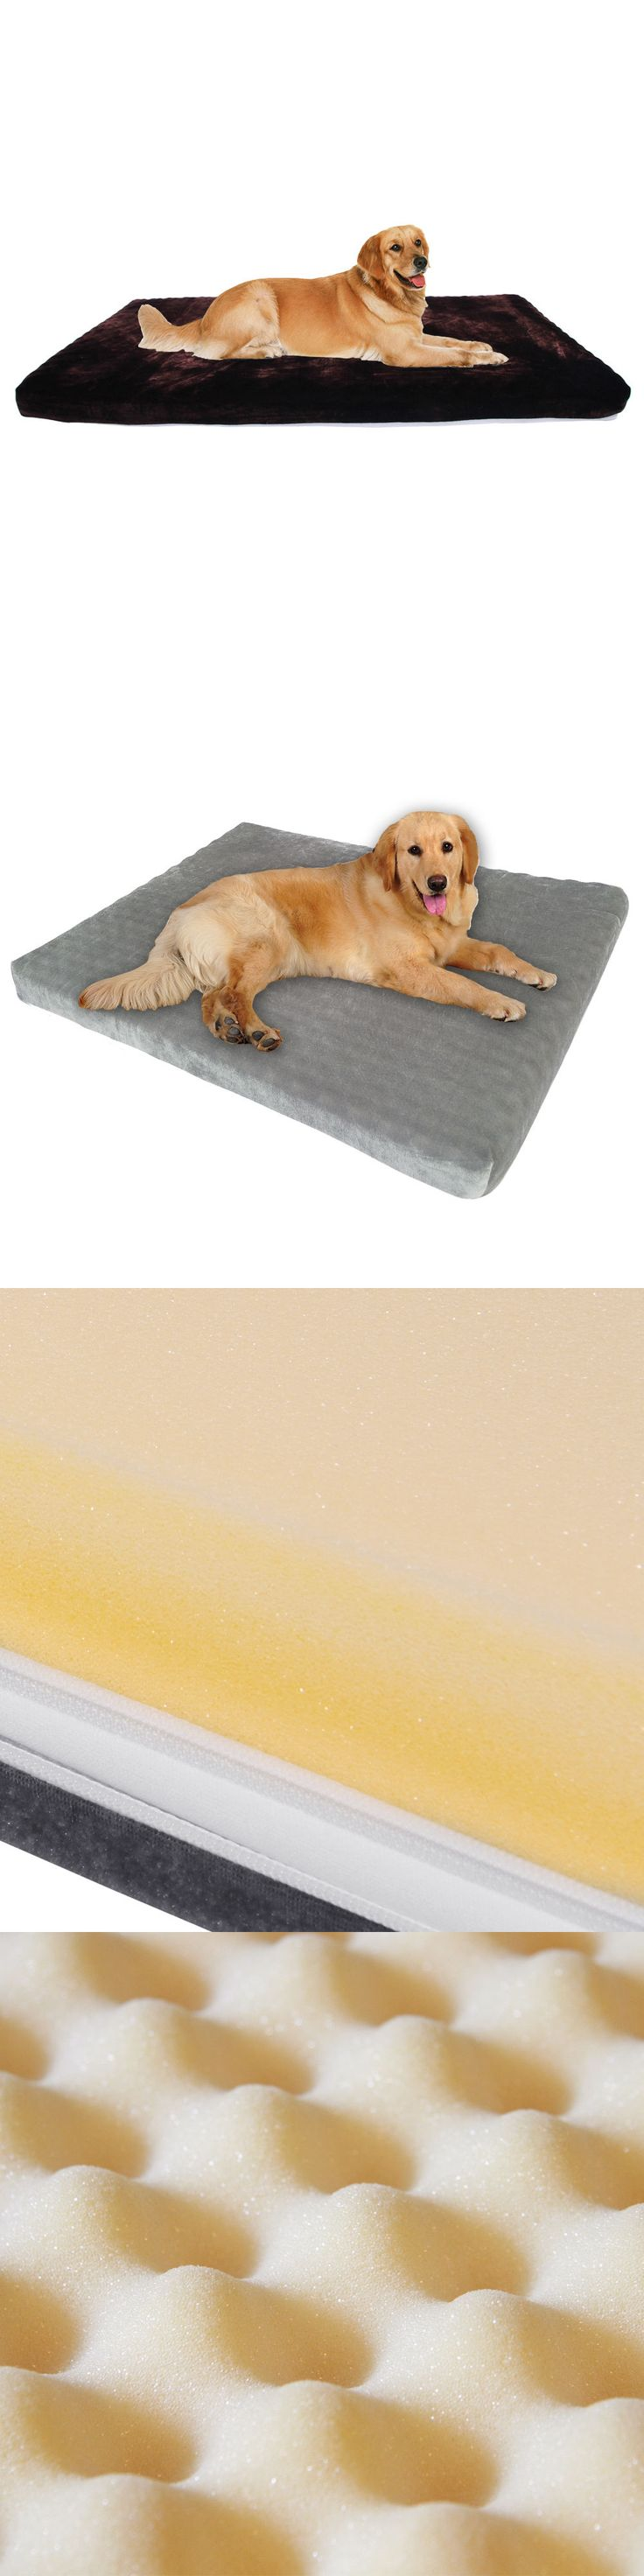 Best 20 Xl dog beds ideas on Pinterest